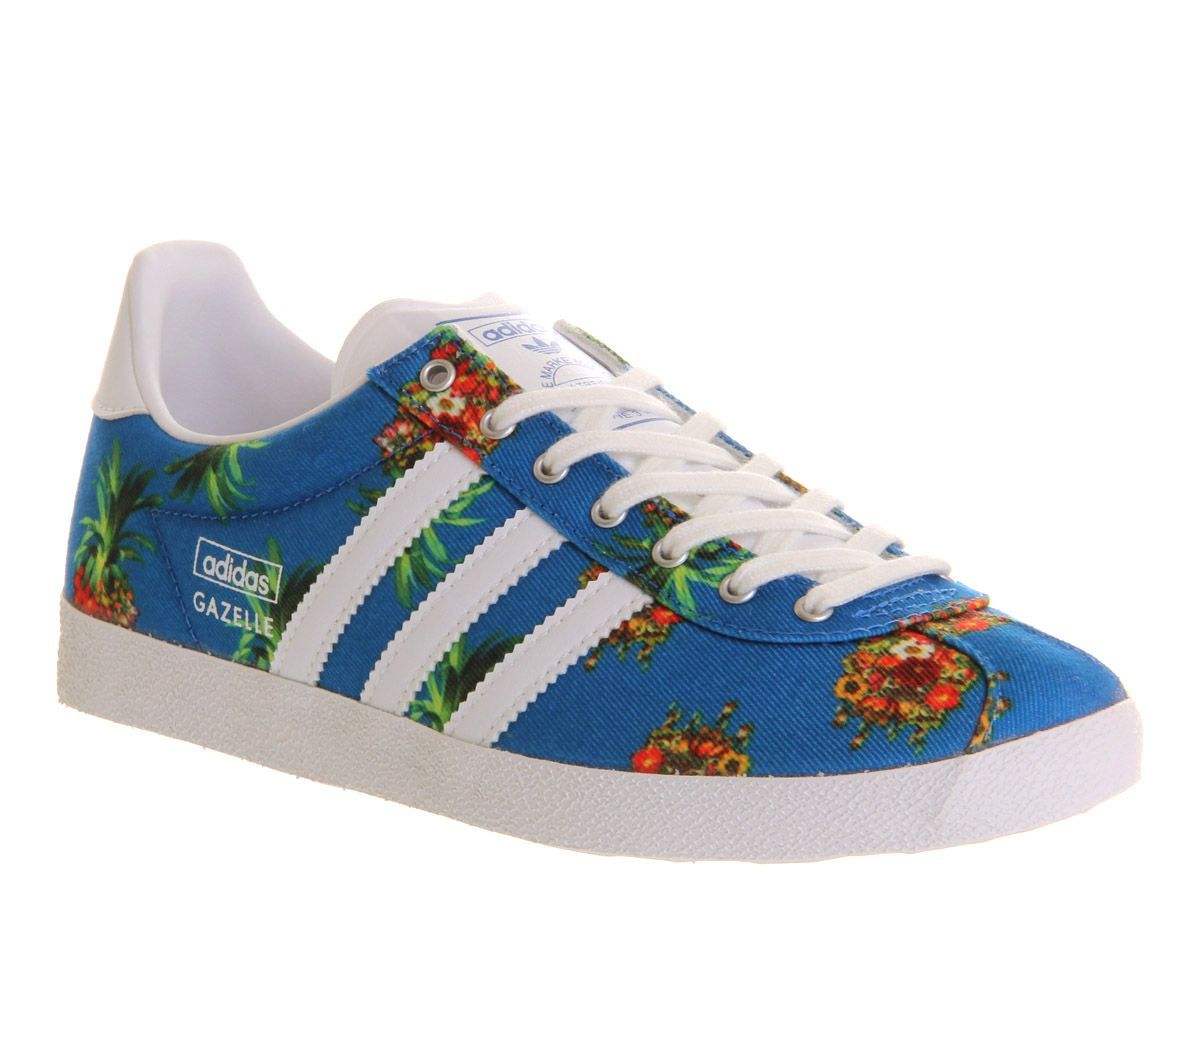 huge selection of 2f8fd a21b5 Adidas Gazelle Og W Farm Pineapple Flower - Hers trainers